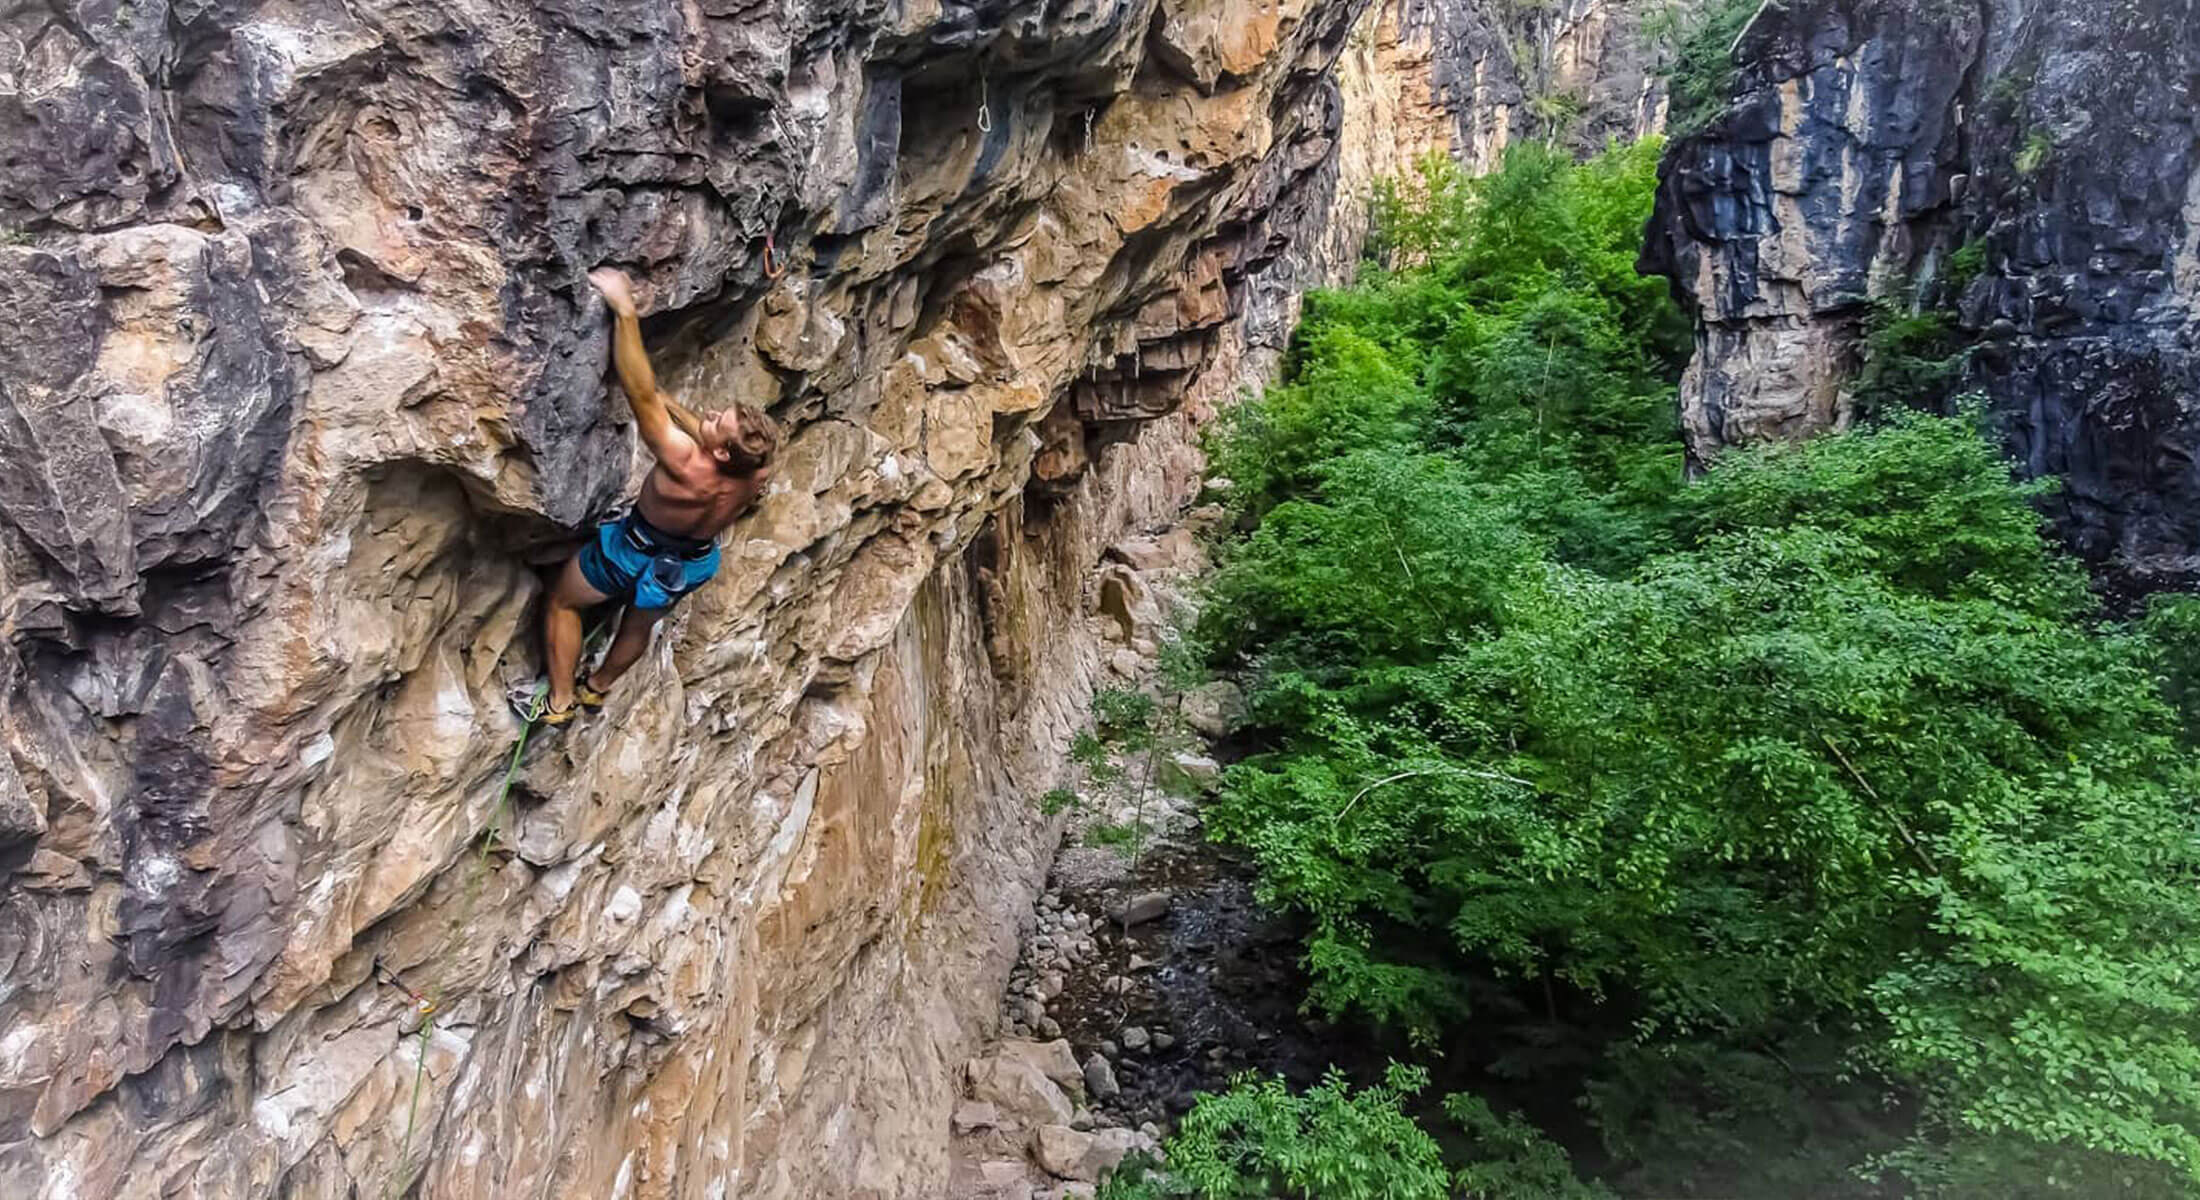 Rock climber in the Black Hills National Forest